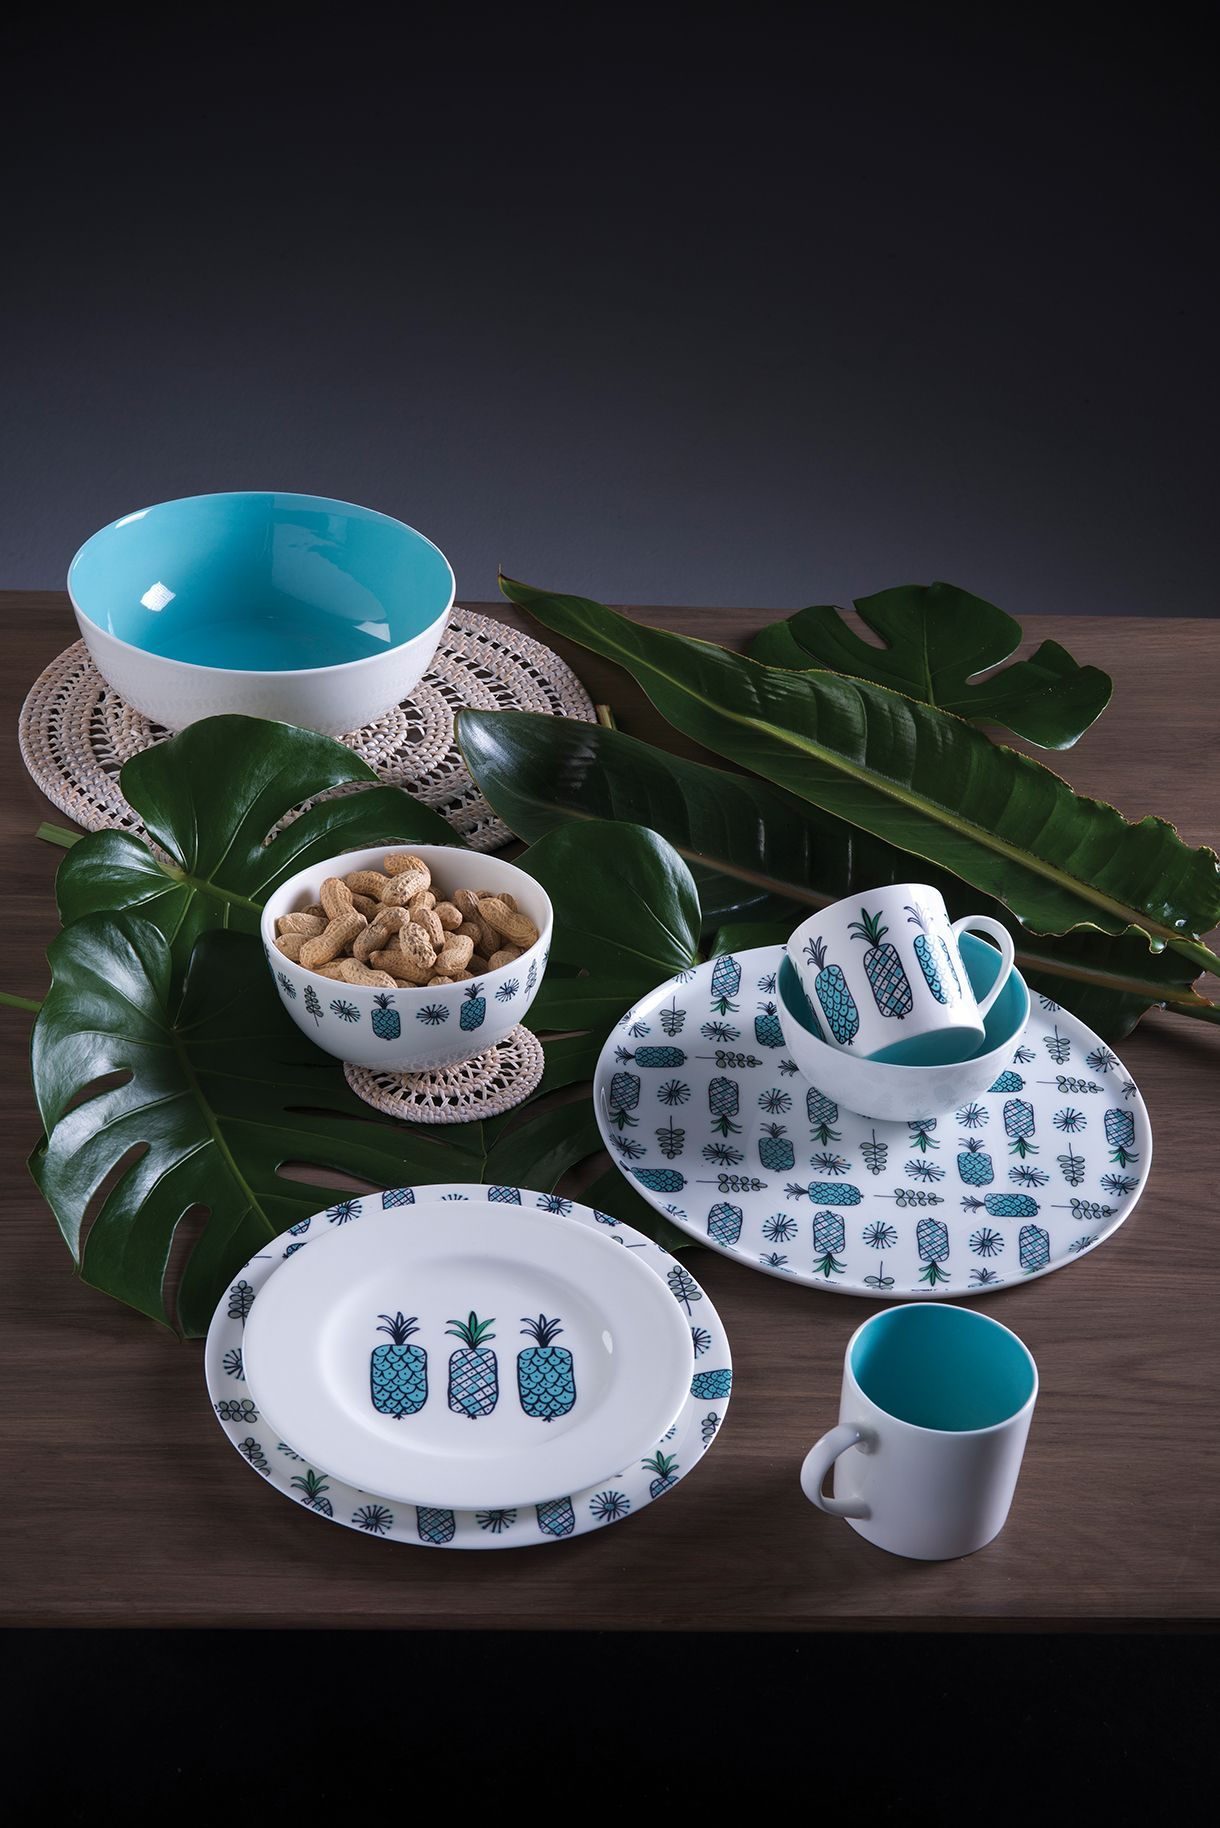 Citta Design Summer 2014 15 Collection A Midsummer Daydream Inspired By The City Of Hanoi Kitchen Dining Dining Mint Salad